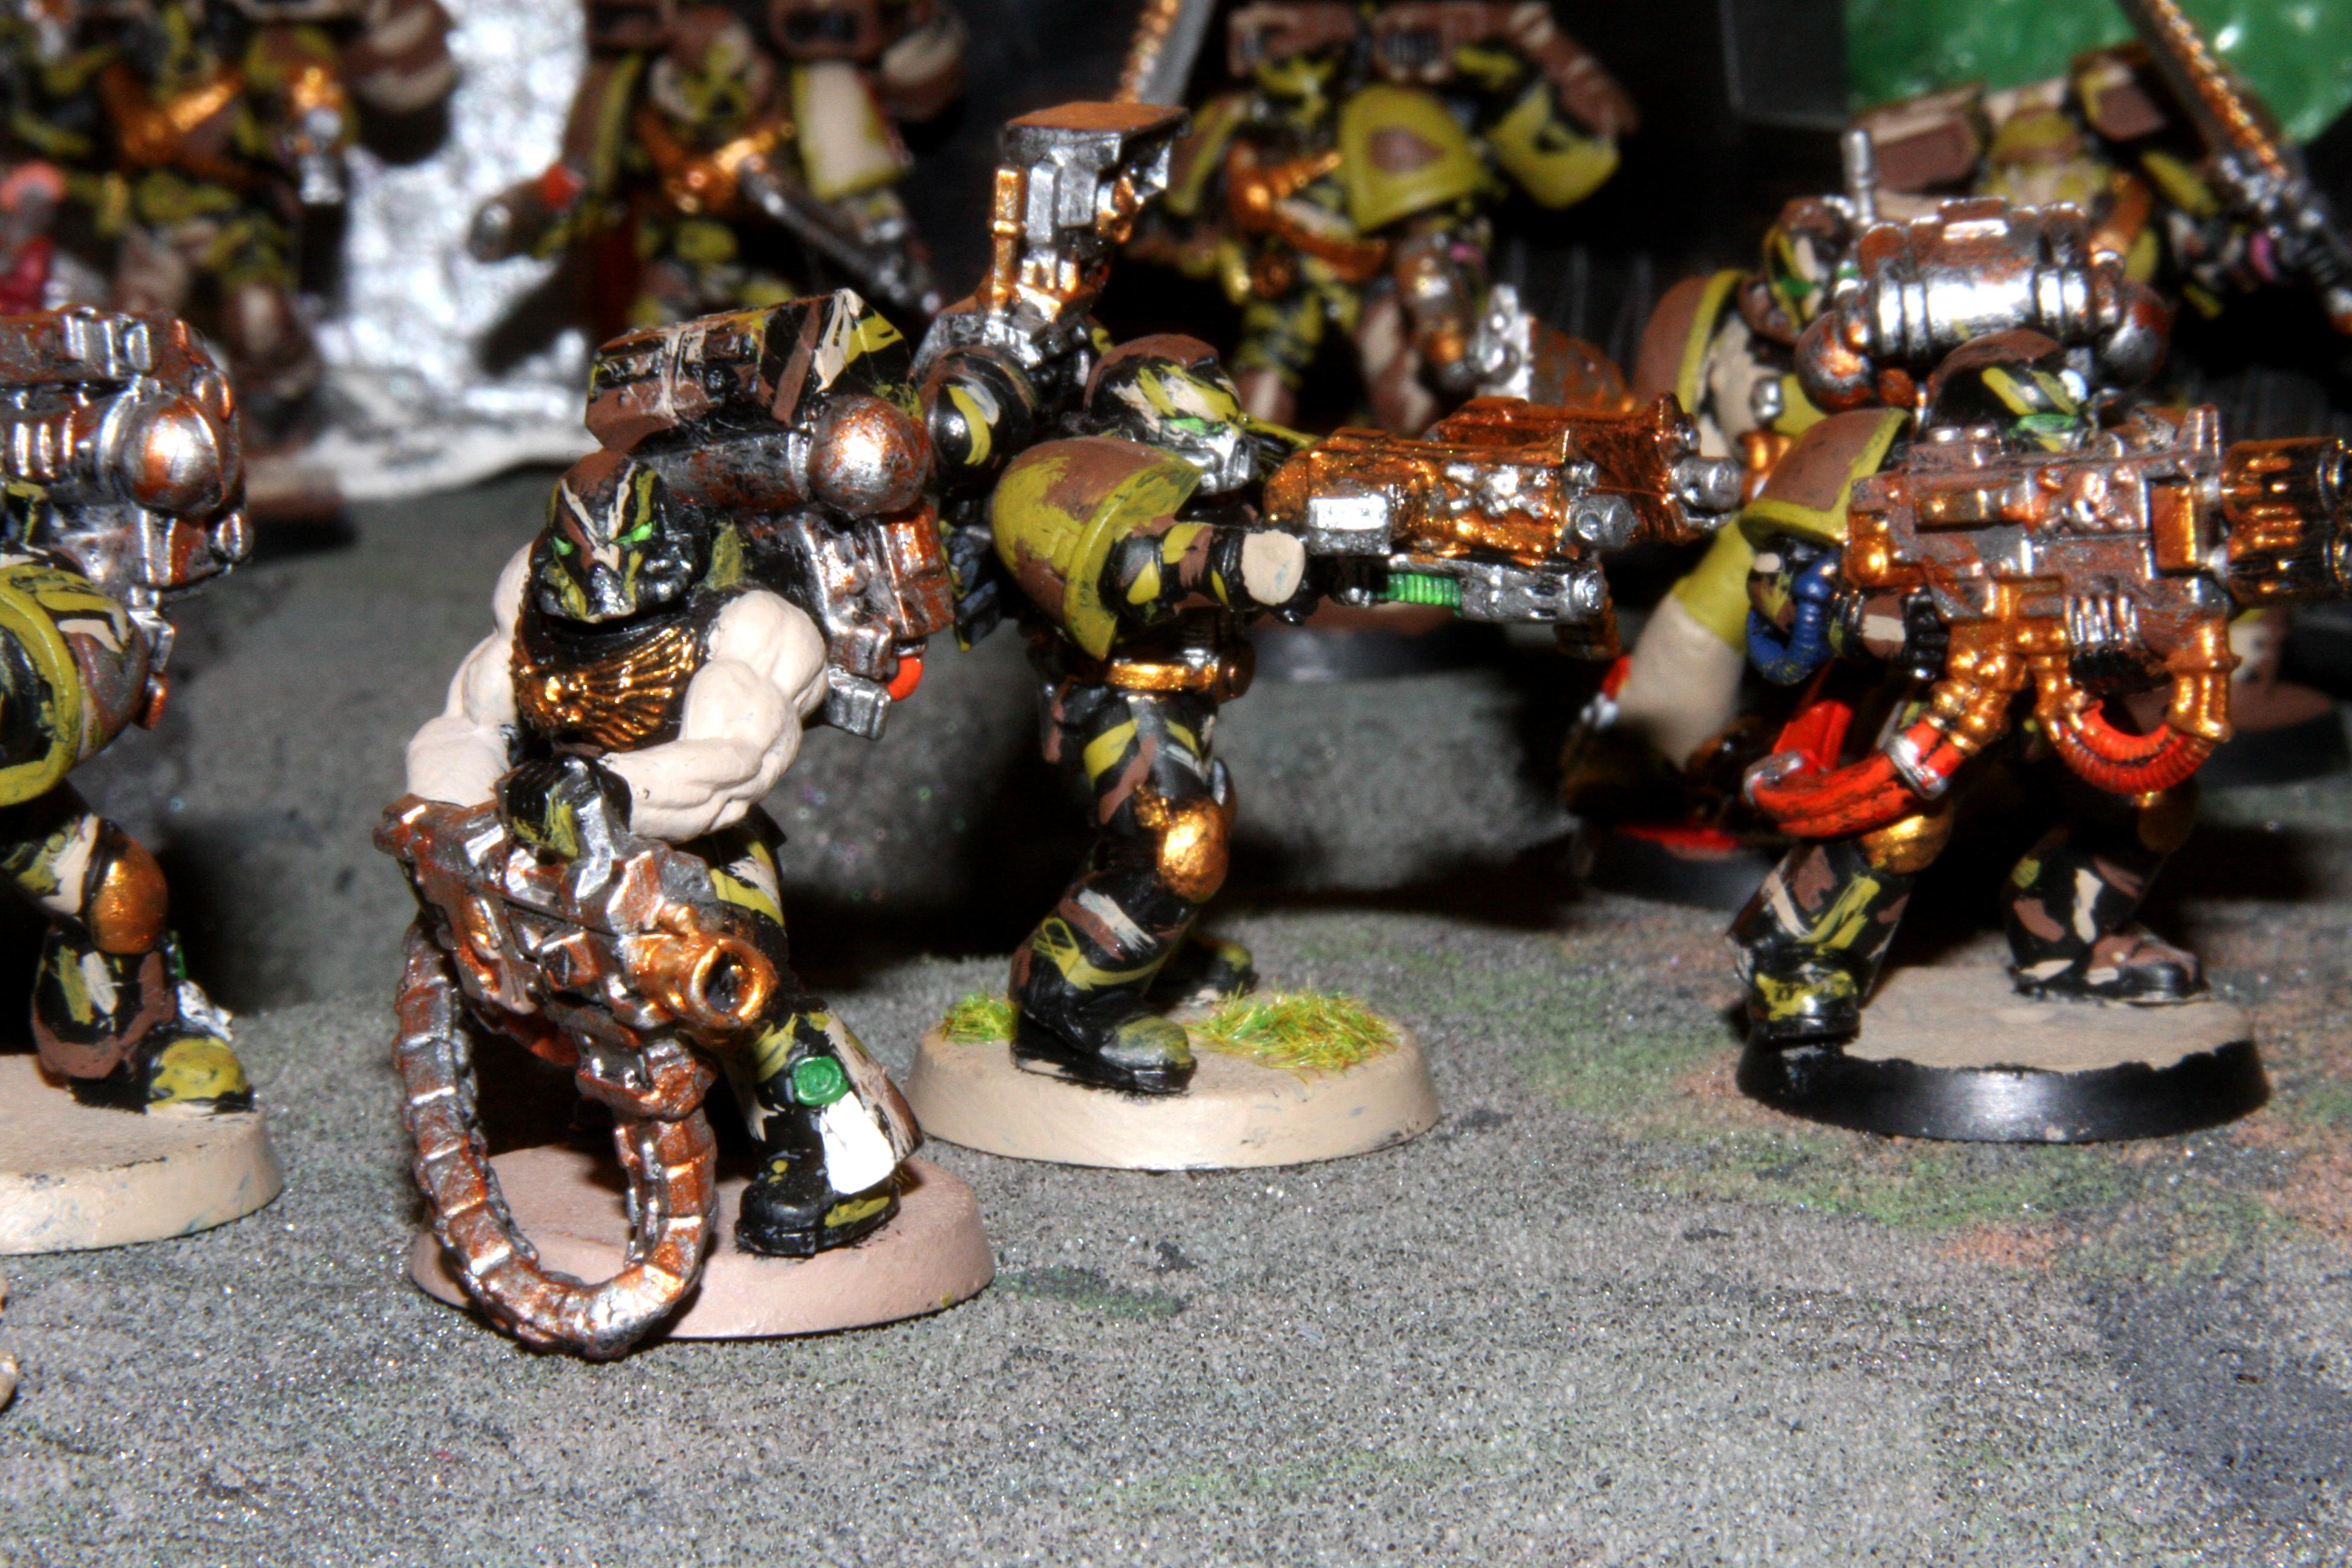 66th, Camo Marines, Space Marines